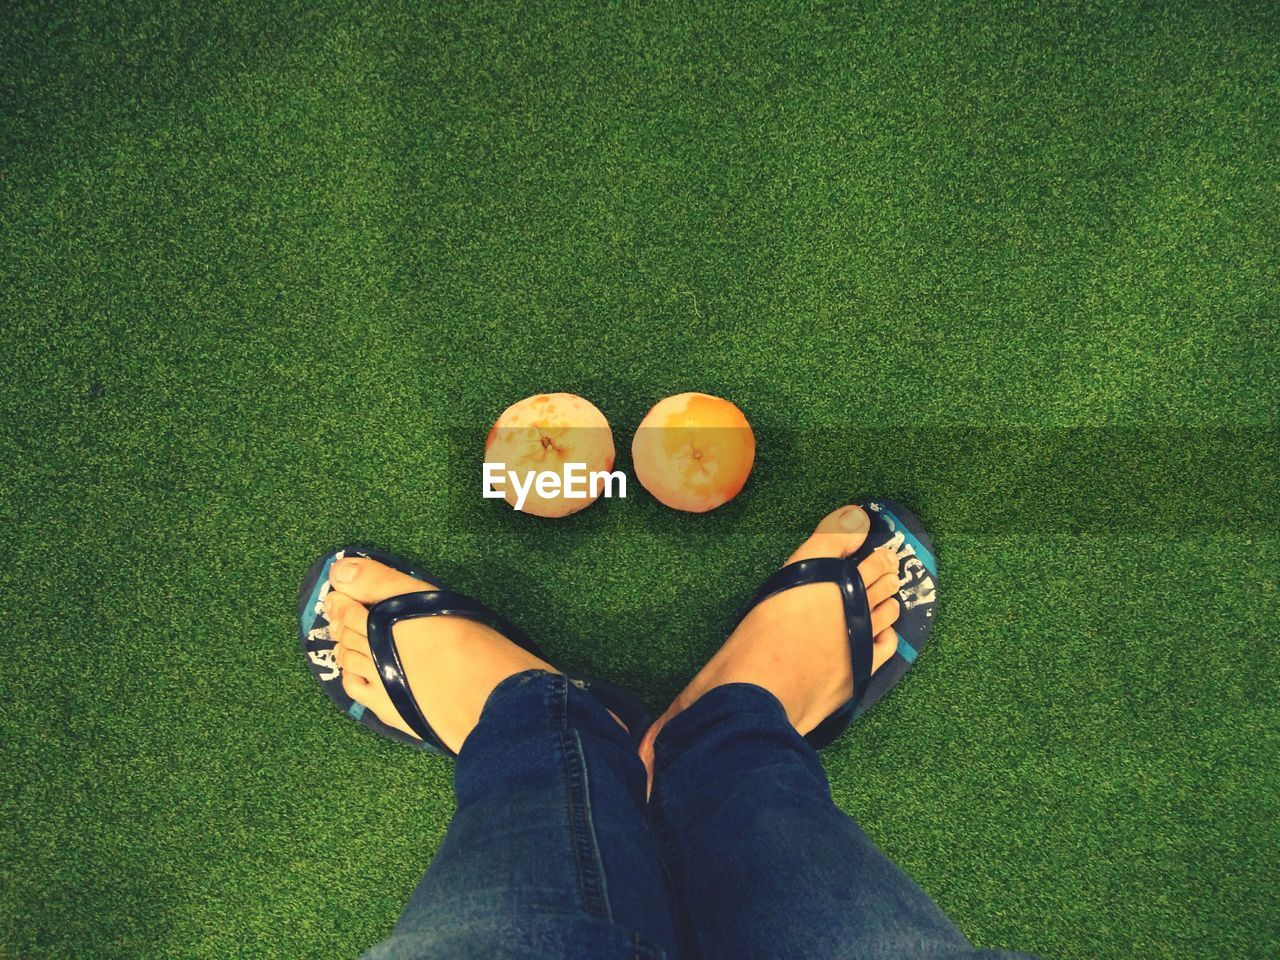 grass, one person, low section, healthy eating, human leg, green color, high angle view, directly above, jeans, real people, casual clothing, fruit, leisure activity, human body part, standing, lifestyles, day, freshness, women, men, food, outdoors, people, adult